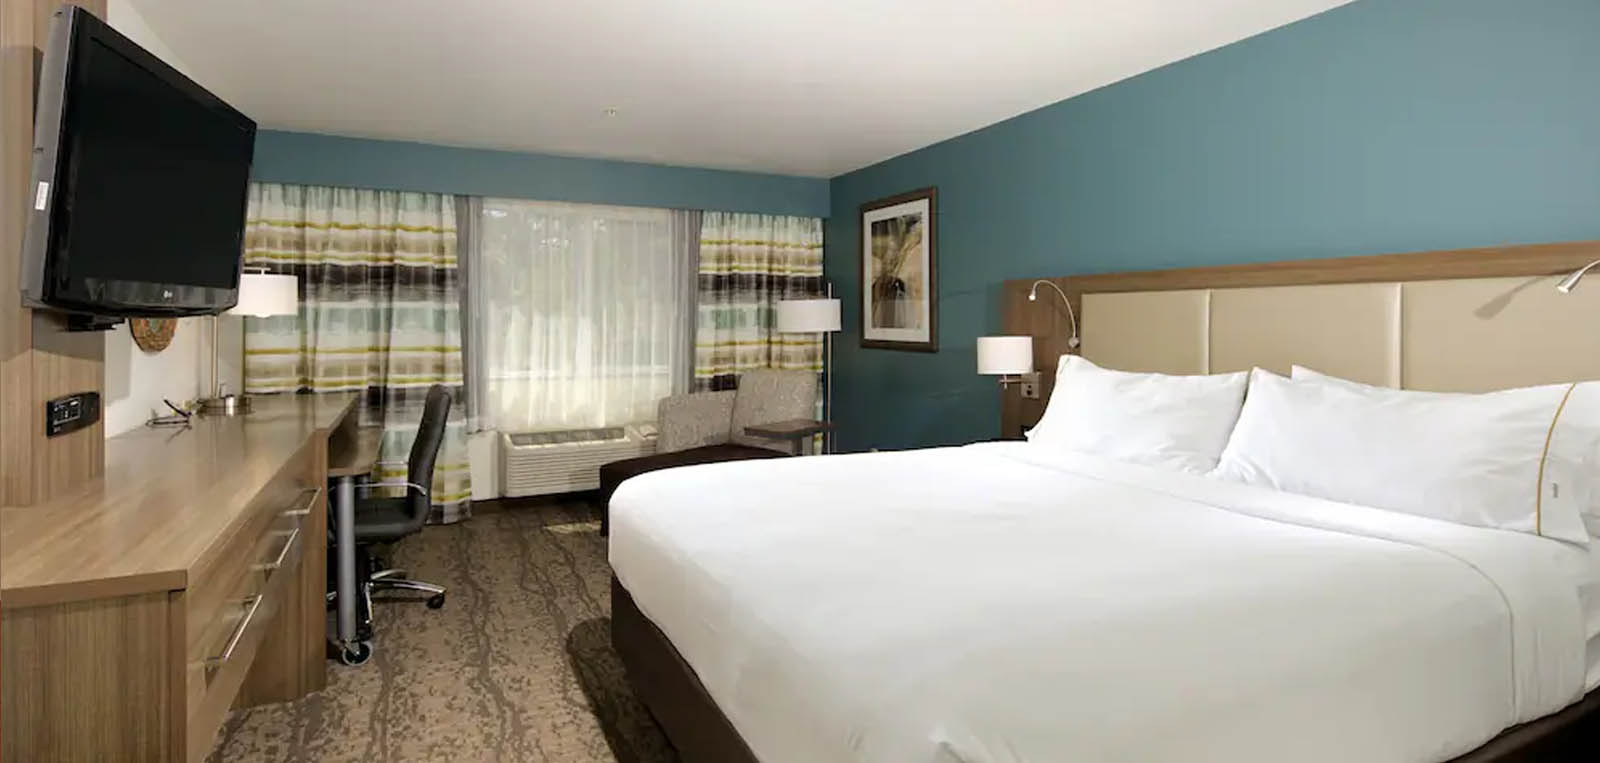 holiday-inn-express-hotel-and-suites-paso-robles-at-california-top Natural Modern Home Design on natural lighting design, garden fence wall design, natural interior design, natural architecture, natural pool design, natural modern living room, stone and wood house design, natural bathroom design, bamboo home design, natural modern bathroom, natural modern interior, natural fashion, natural home decor, natural lamps, natural rugs,